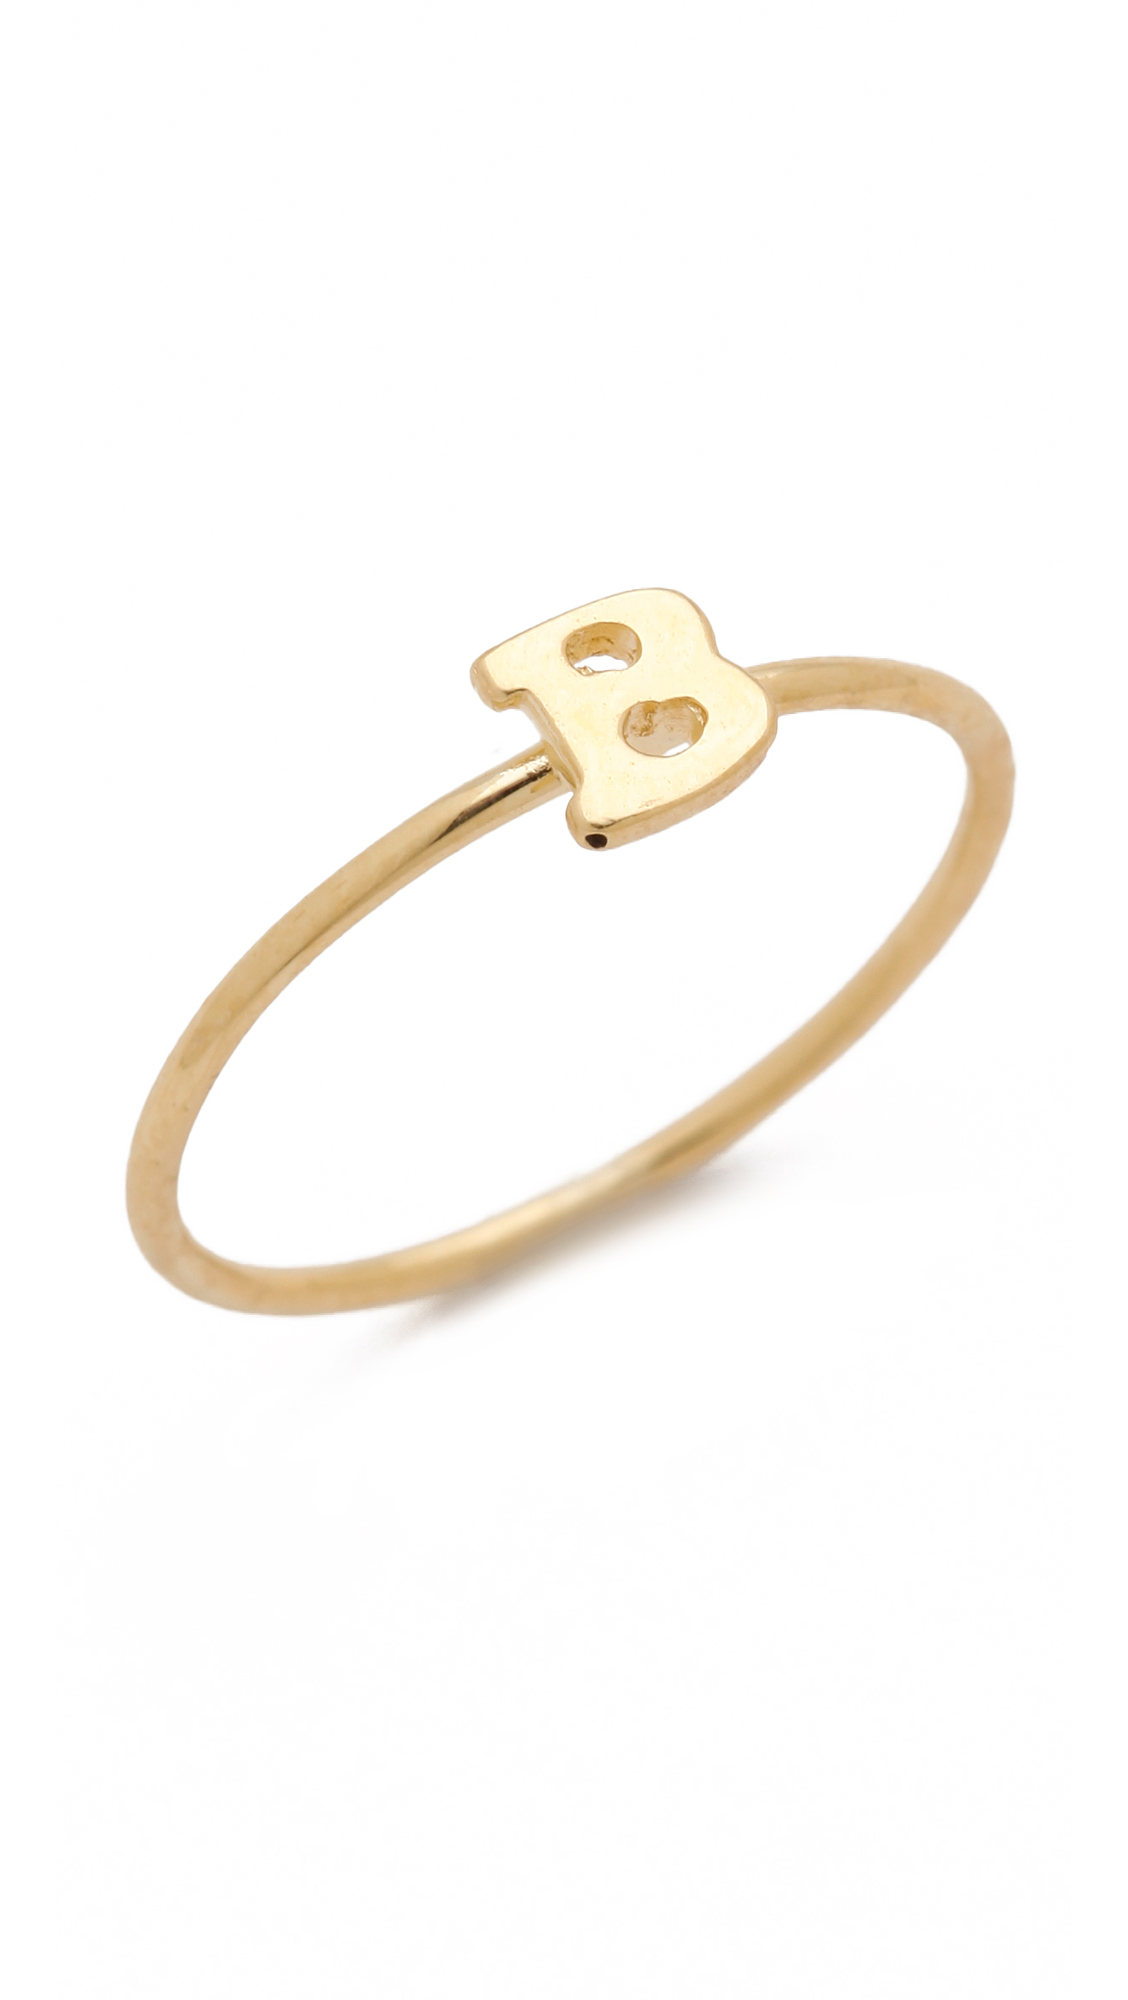 Jacquie aiche ja alphabet letter initial waif ring j in for Gold ring models with letters